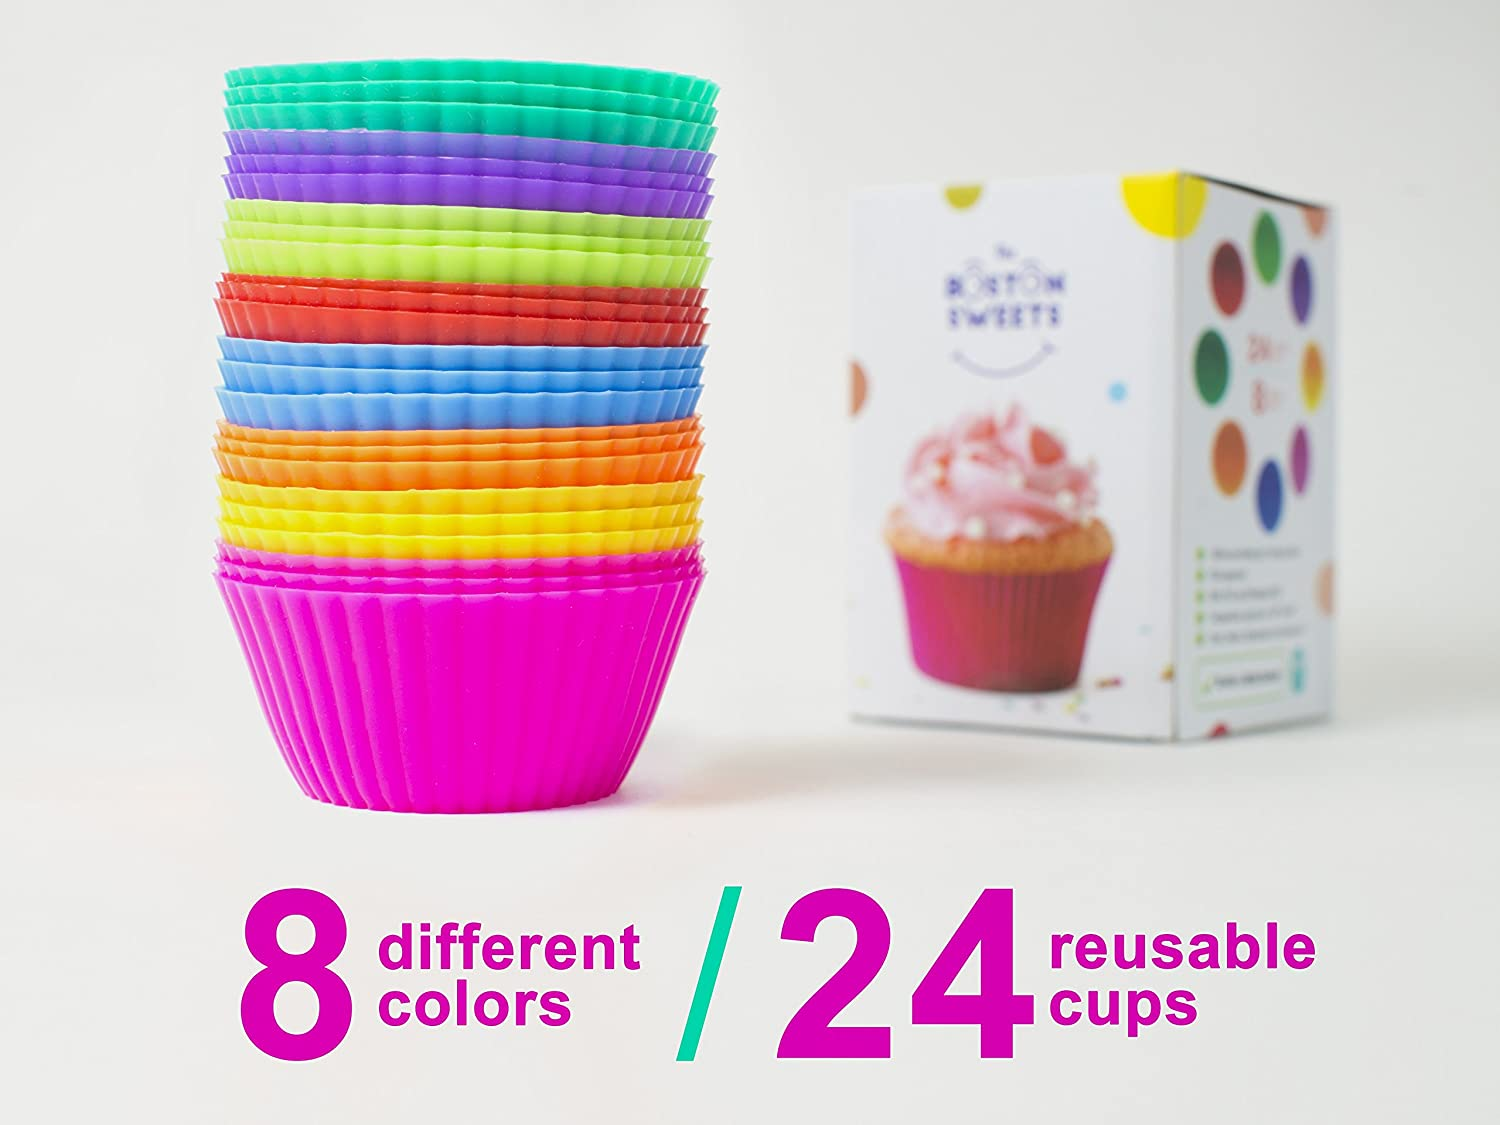 Amazon.com: The Boston Sweets Silicone Cupcake Liners   24 Pack Baking Cups   EIGHT Colors   Reusable U0026 Nonstick Muffin Molds   Cupcake Holders Gift Set  ...